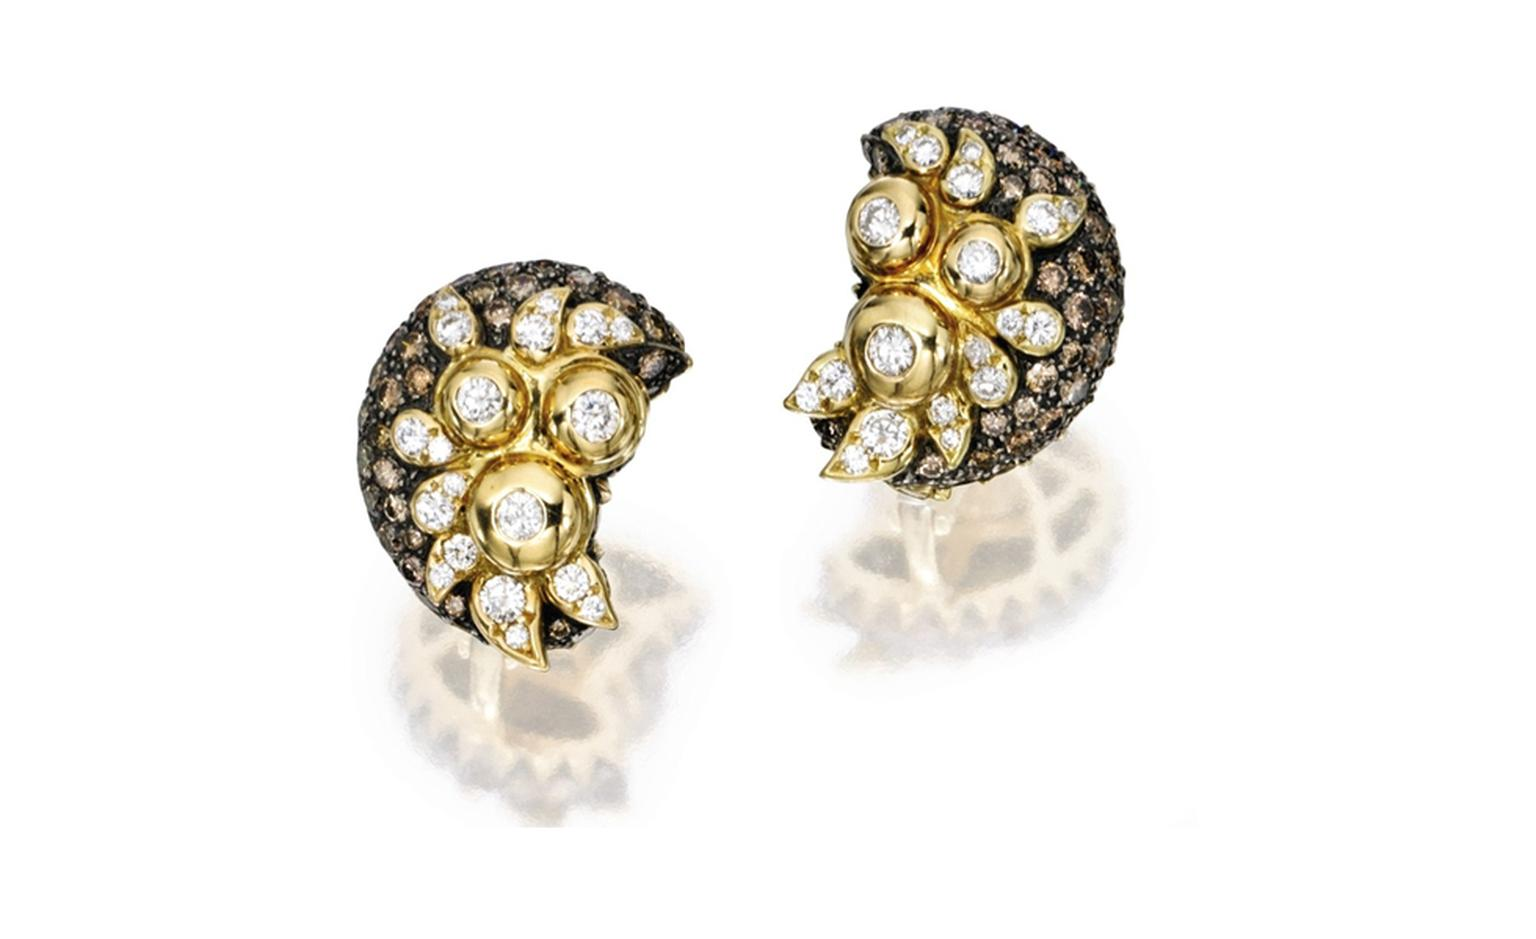 Lot 285 Cooperman & T. &co. 18 Karat Gold Silver Diamond and Colored Diamond Earclips. Est. $ 5/7,000